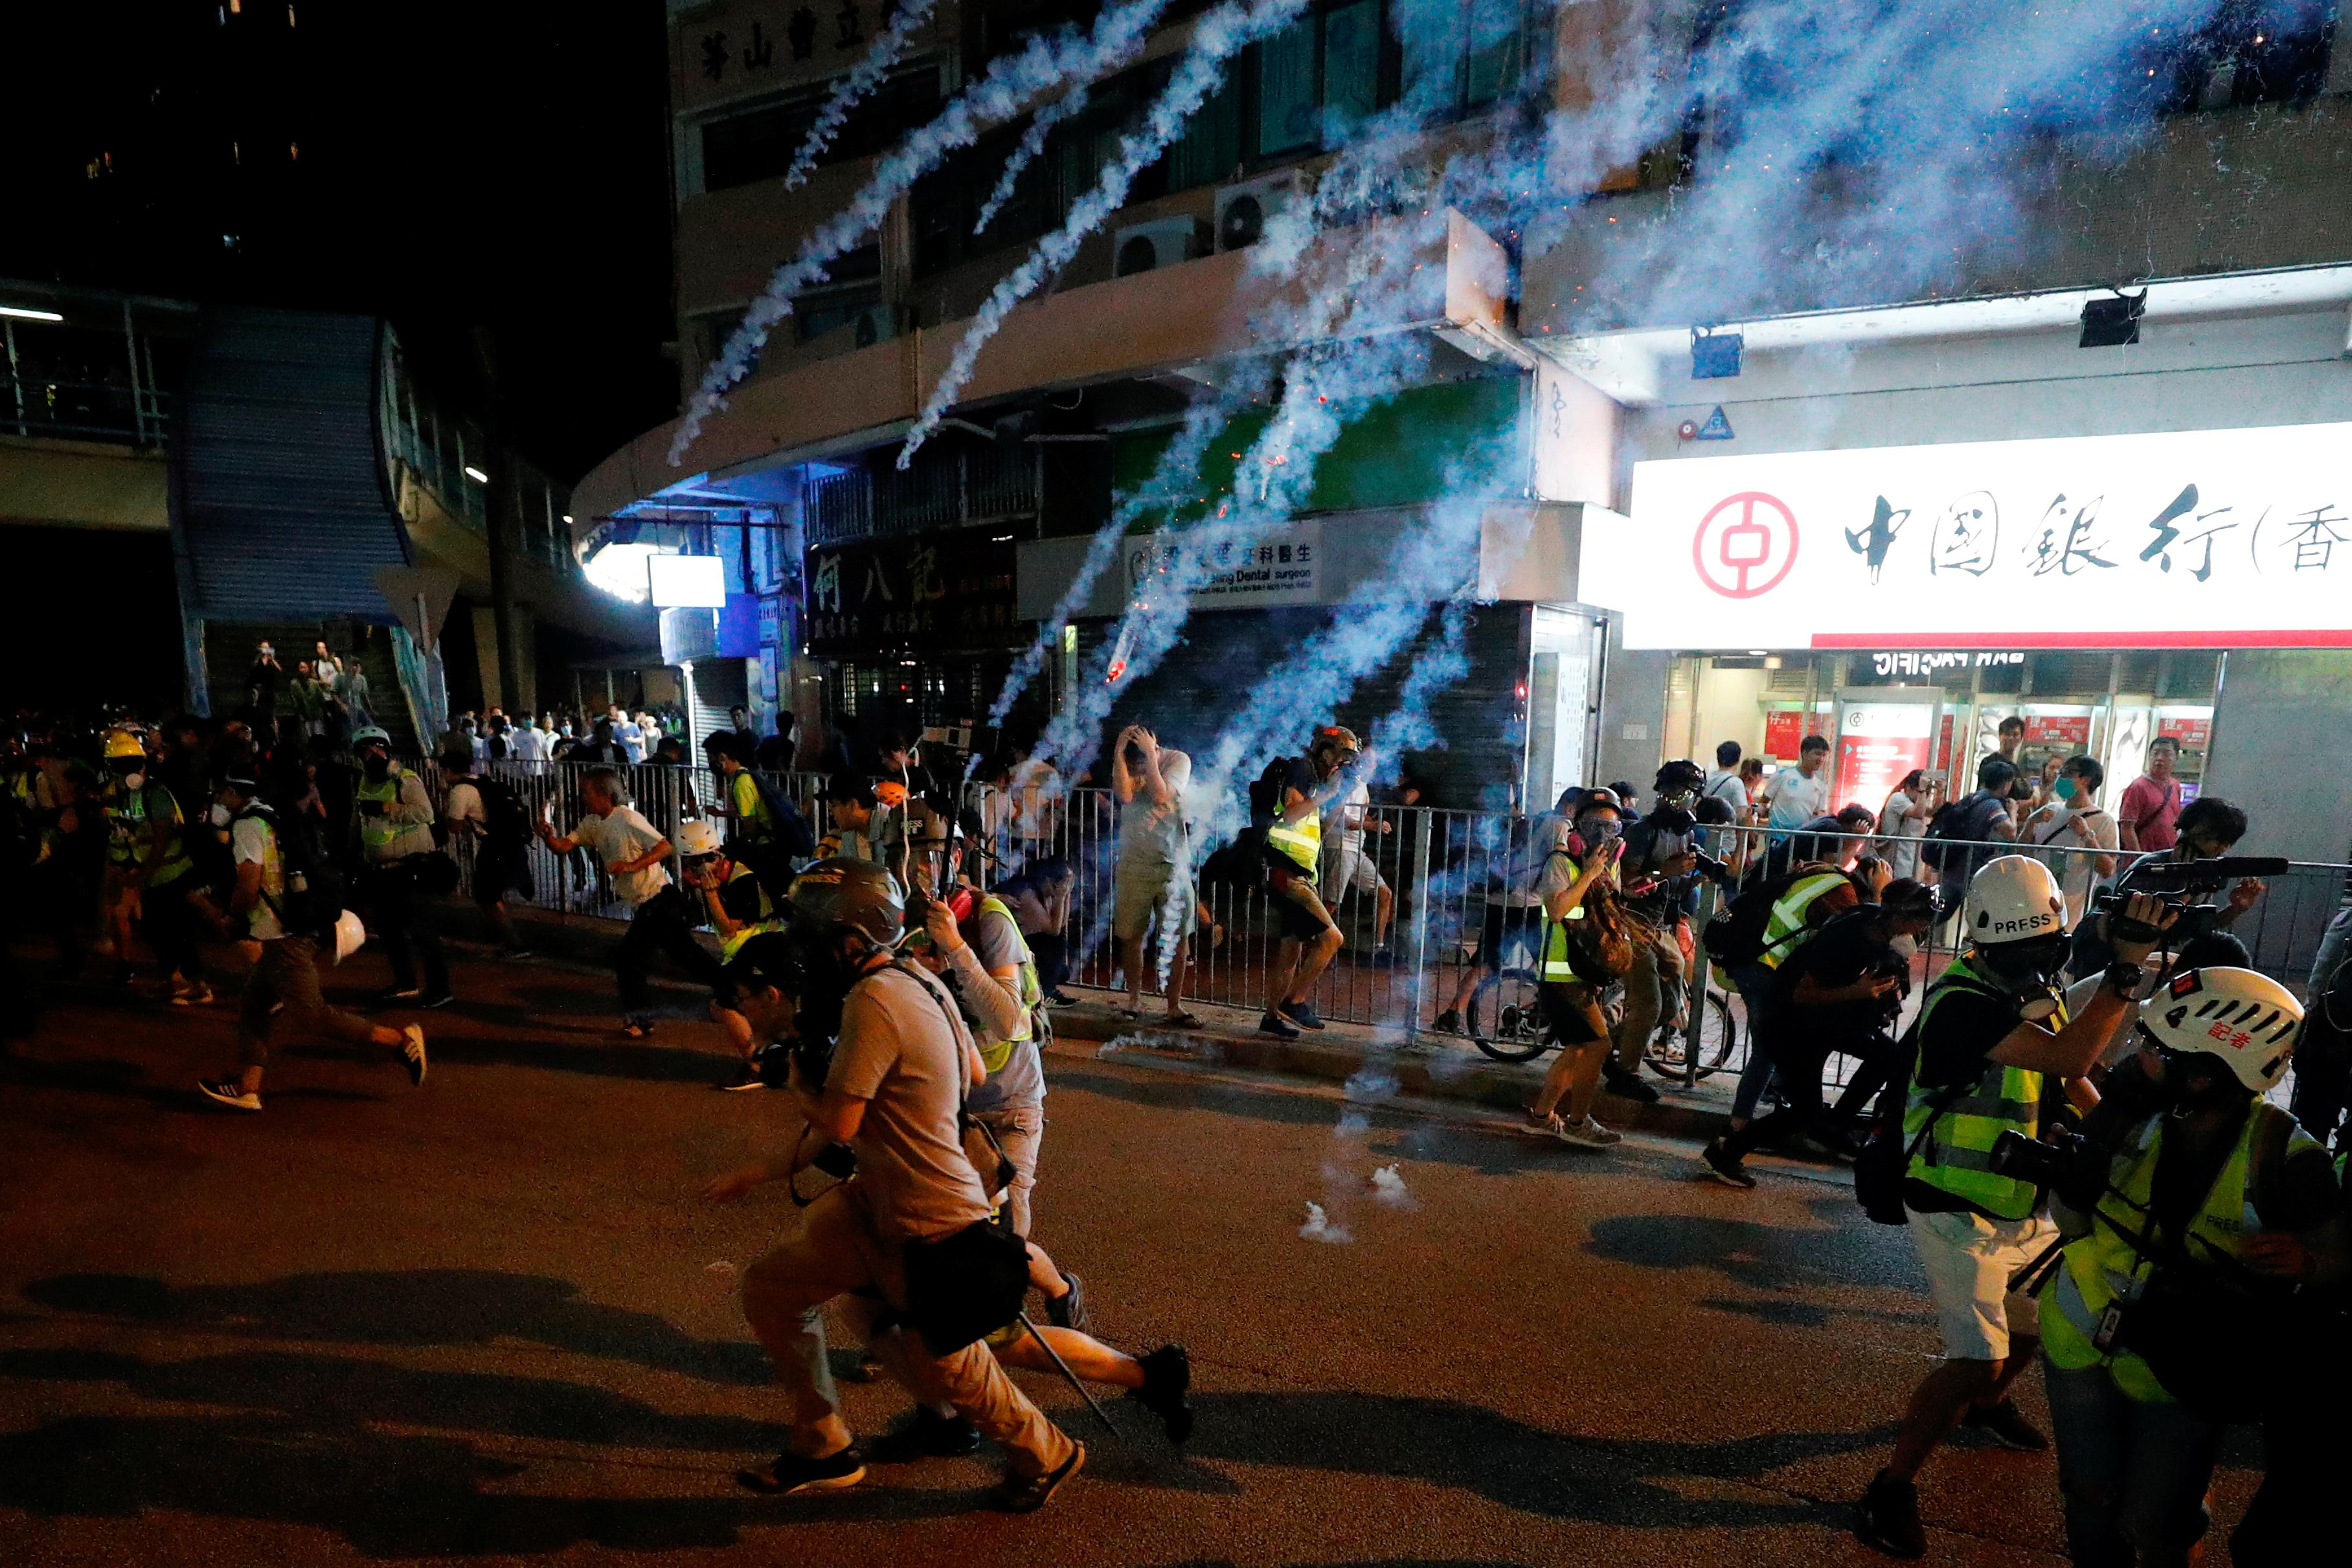 Hong Kong riot police move to curb airport protest after violent...